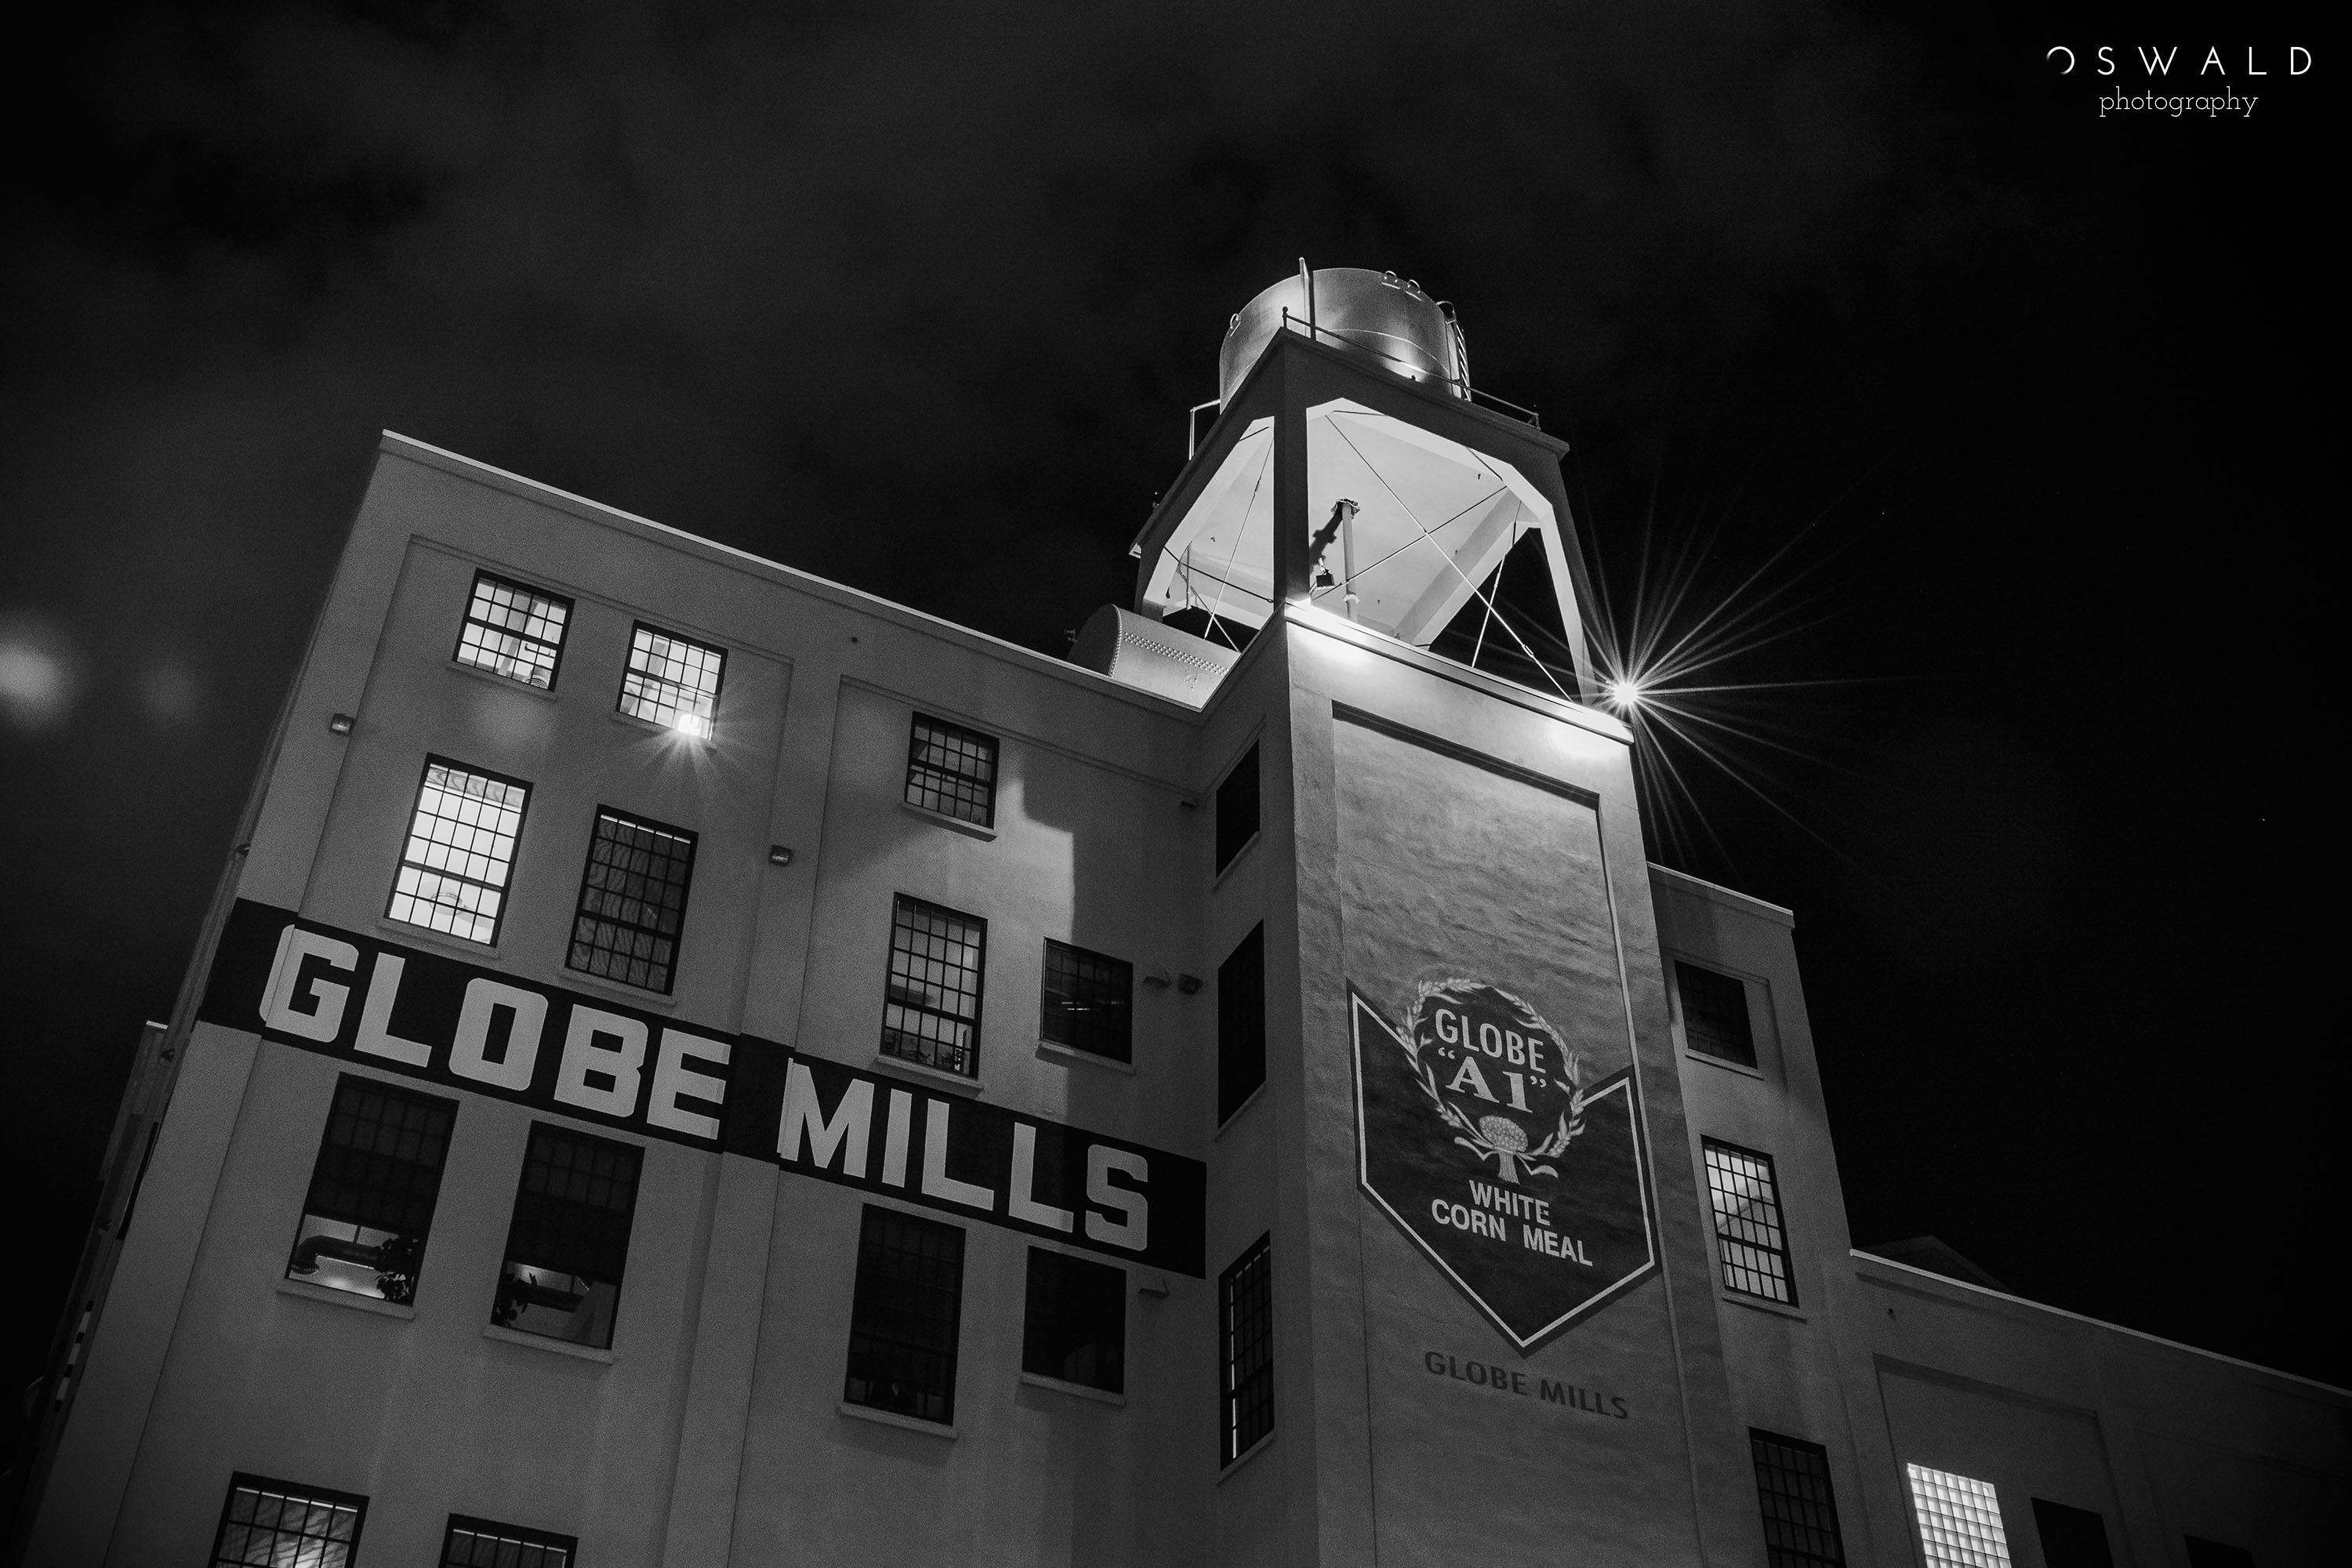 Monochrome photo of the Old Globe Mills building in Downtown Sacramento